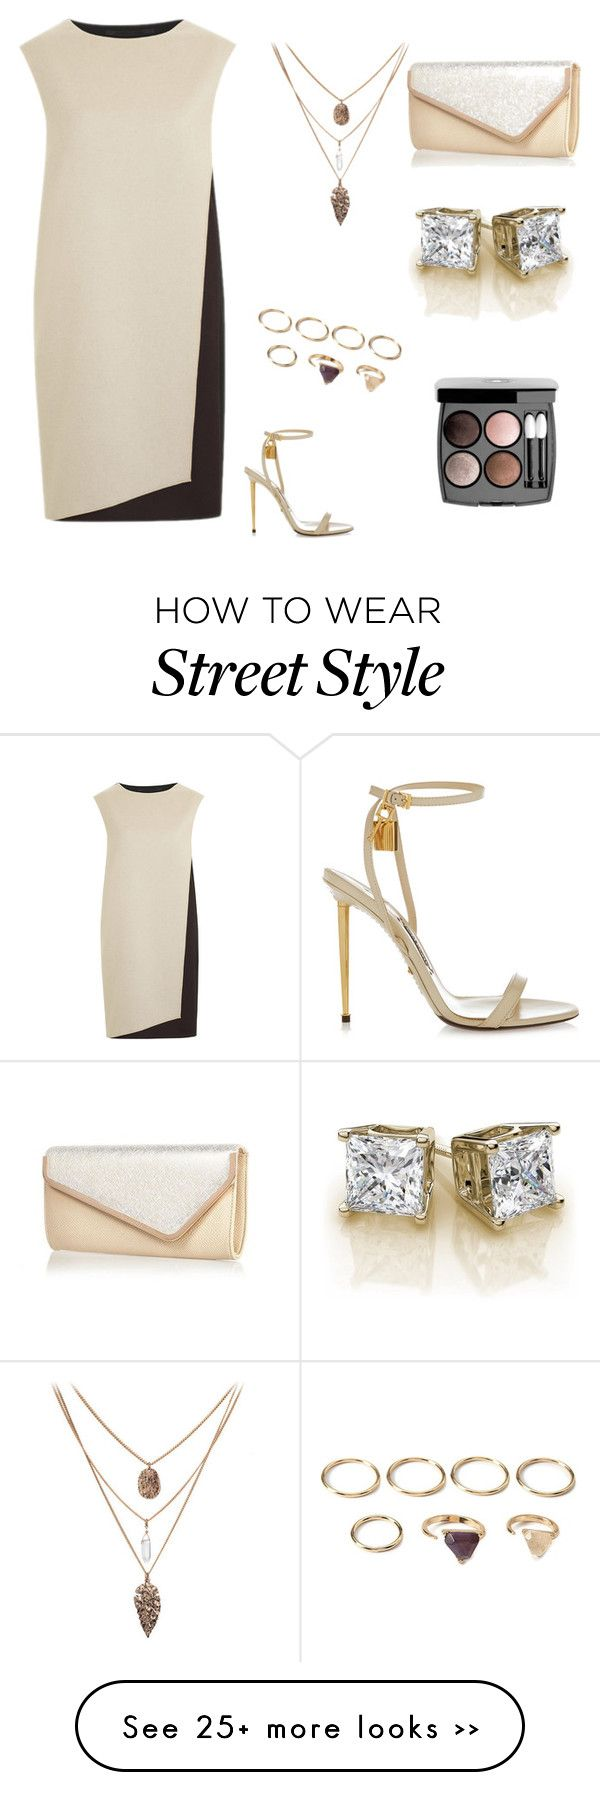 """Elegant Style!"" by alexandra2004 on Polyvore featuring PINGHE, Tom Ford, Forever 21, River Island and Chanel"